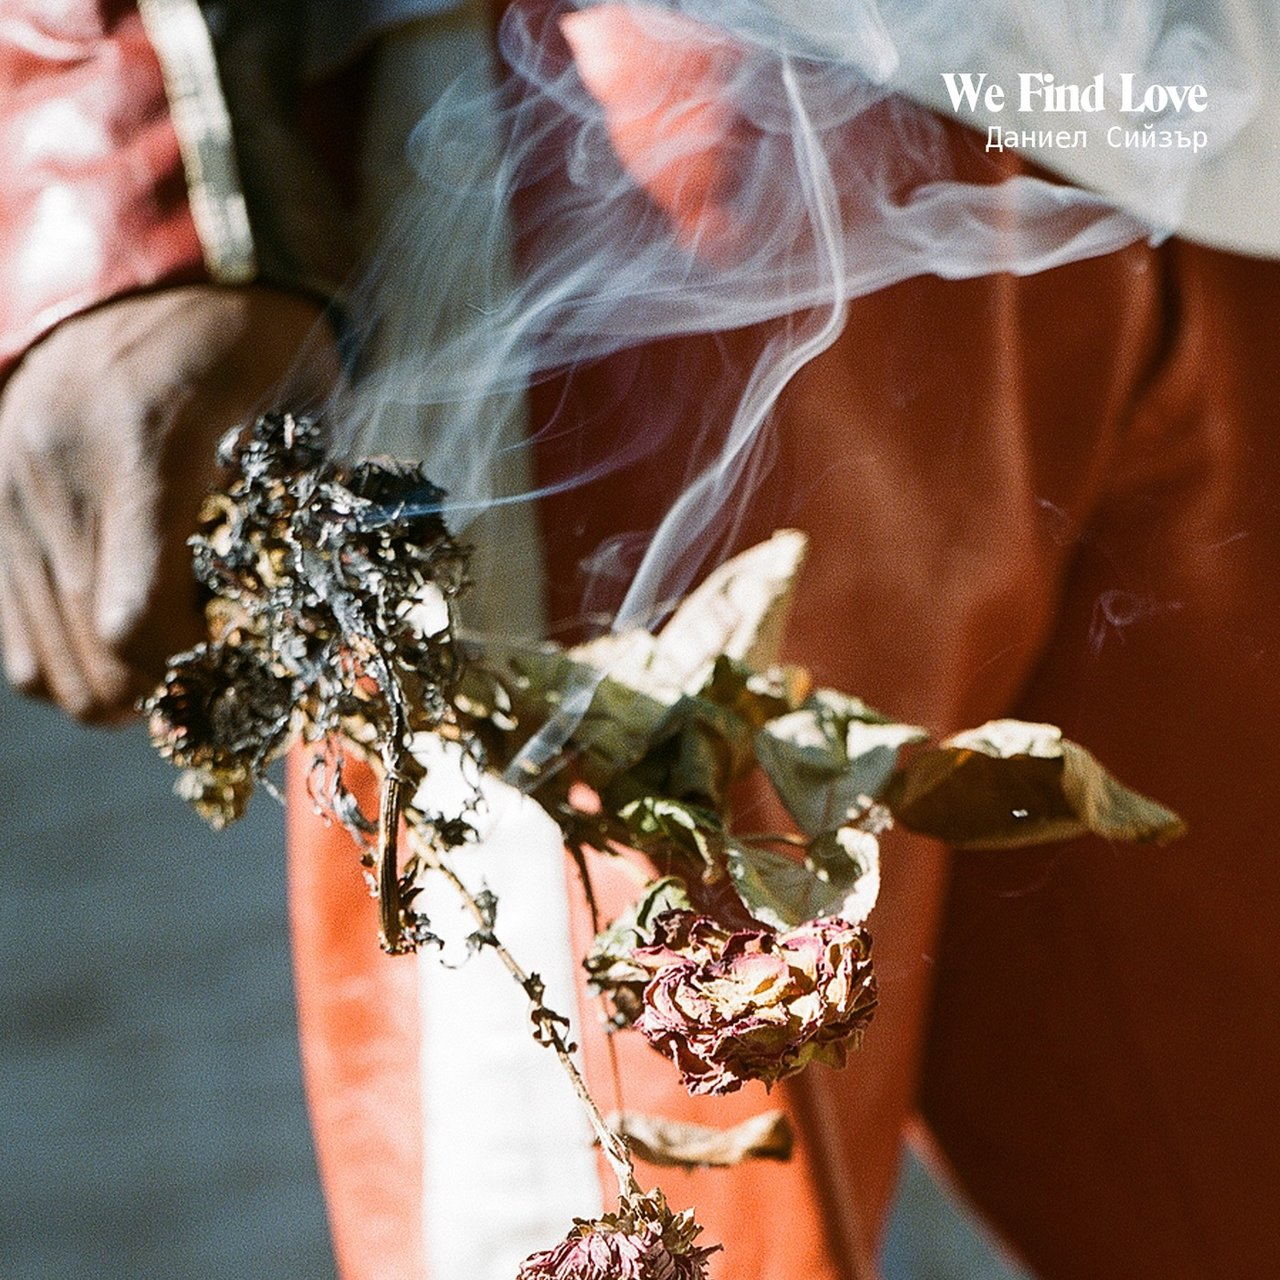 We Find Love - Single